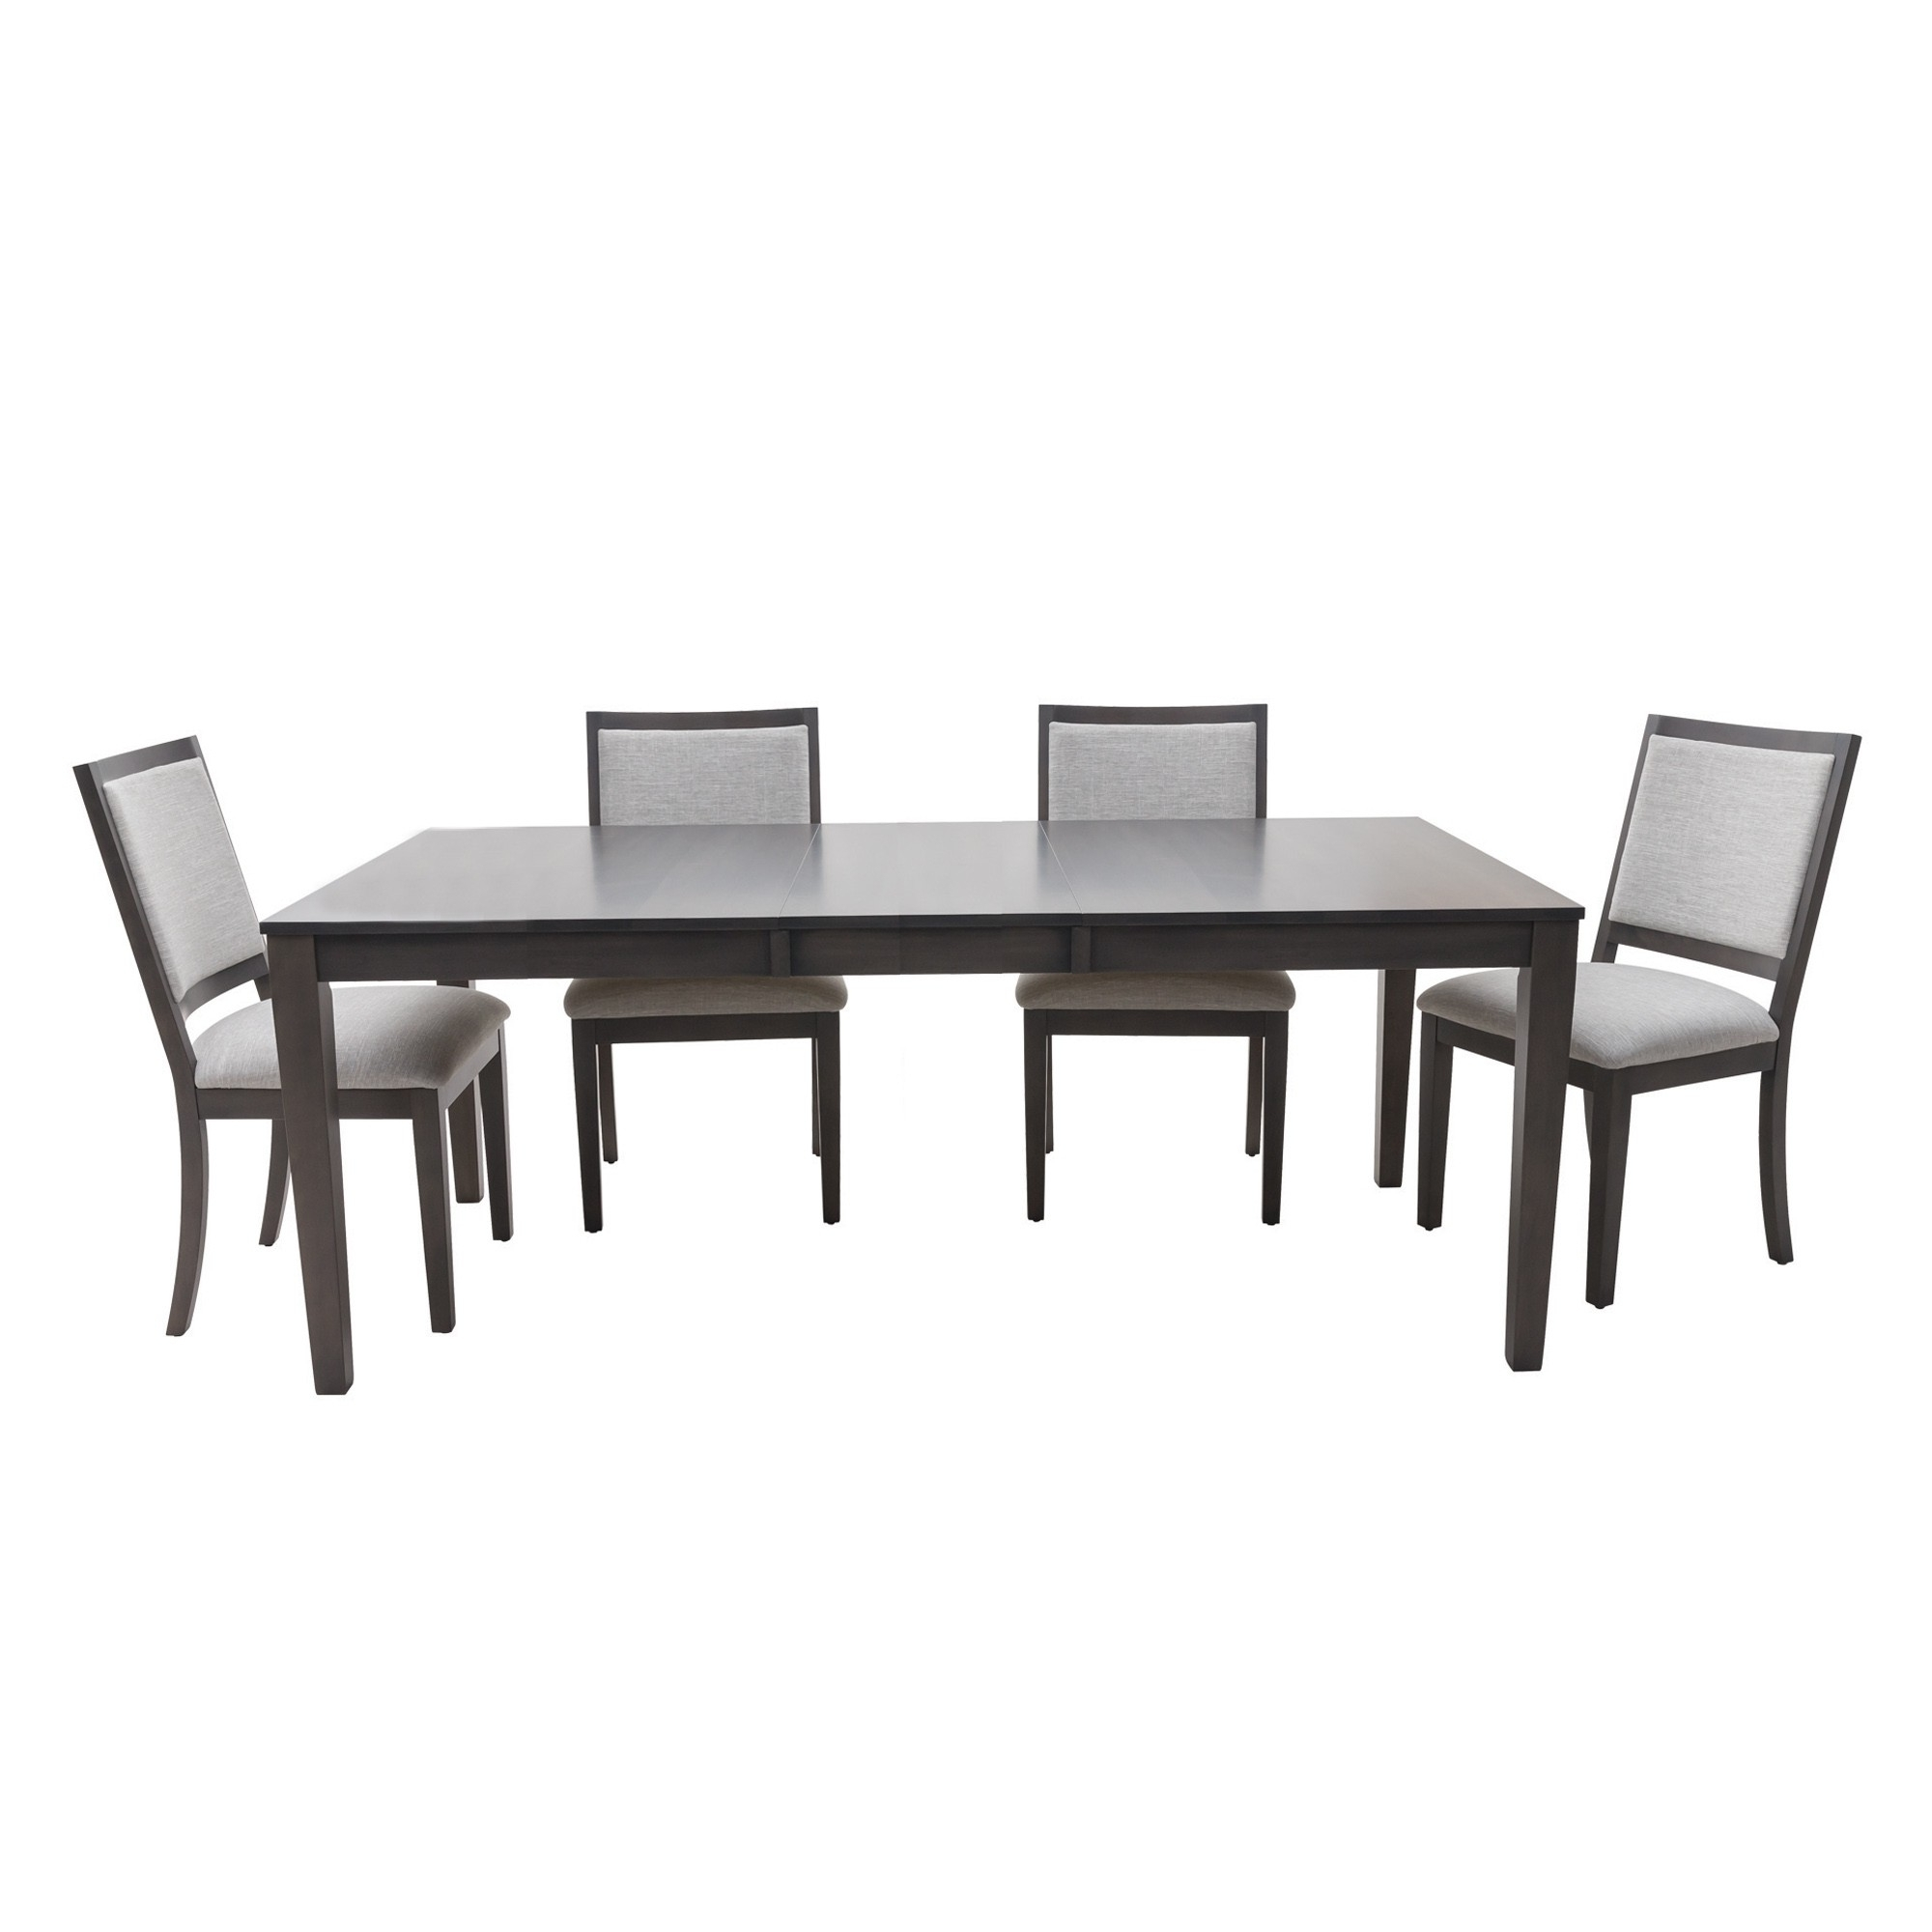 Preferred Glasgow Dining Sets Regarding Glasgow 5Pc Dining Set Table With 4 Chairs (Gallery 4 of 25)